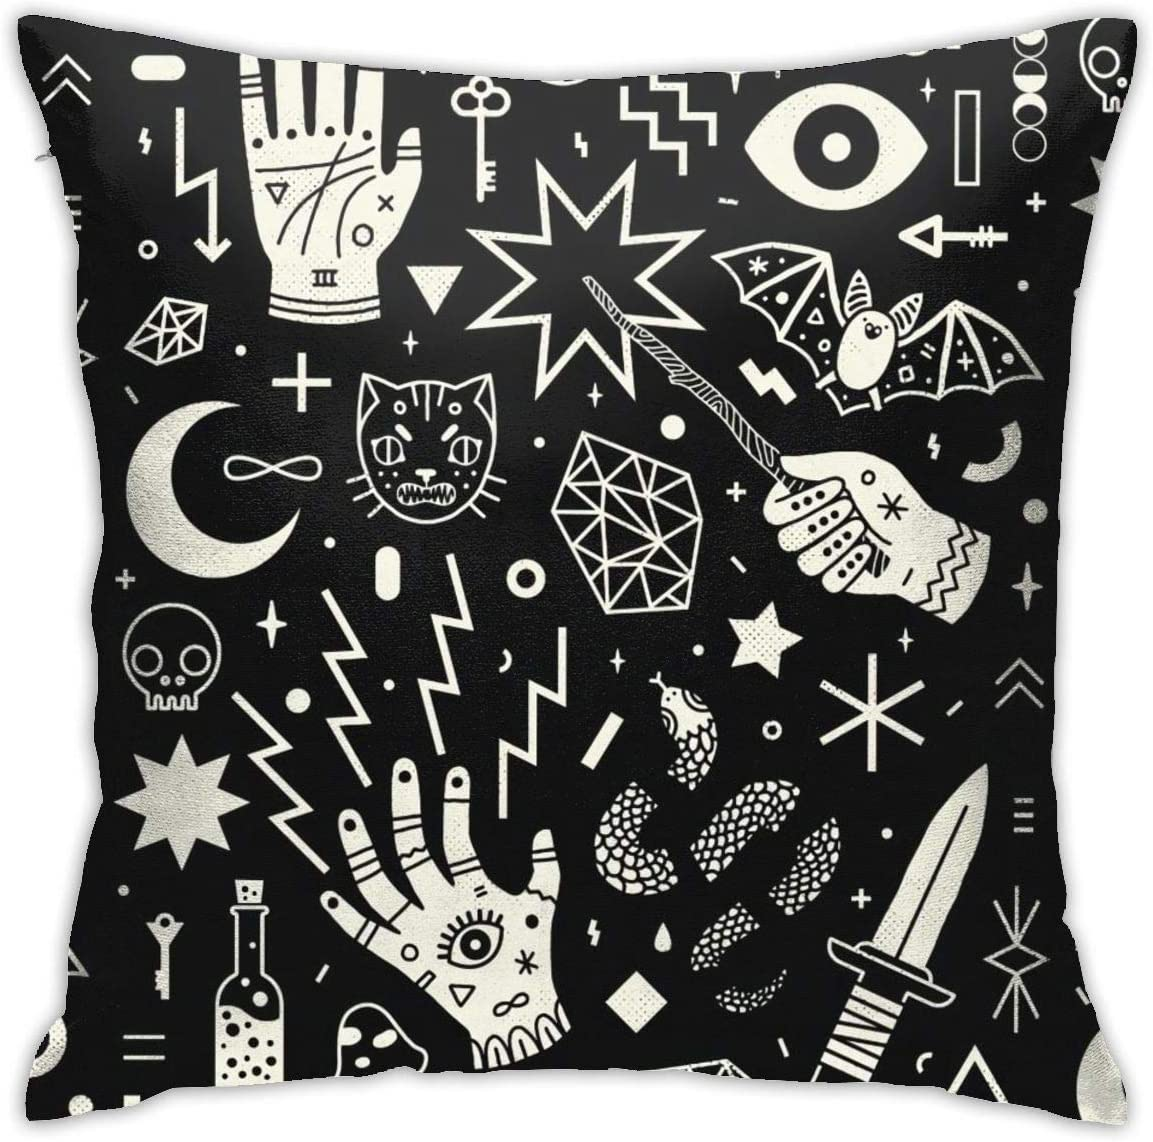 Yaateeh Magical Style Hand Eyes Moon Skull Cat Bat Snake Throw Pillow Covers Decorative 18x18 Inch Pillowcase Square Cushion Cases for Home Sofa Bedroom Livingroom